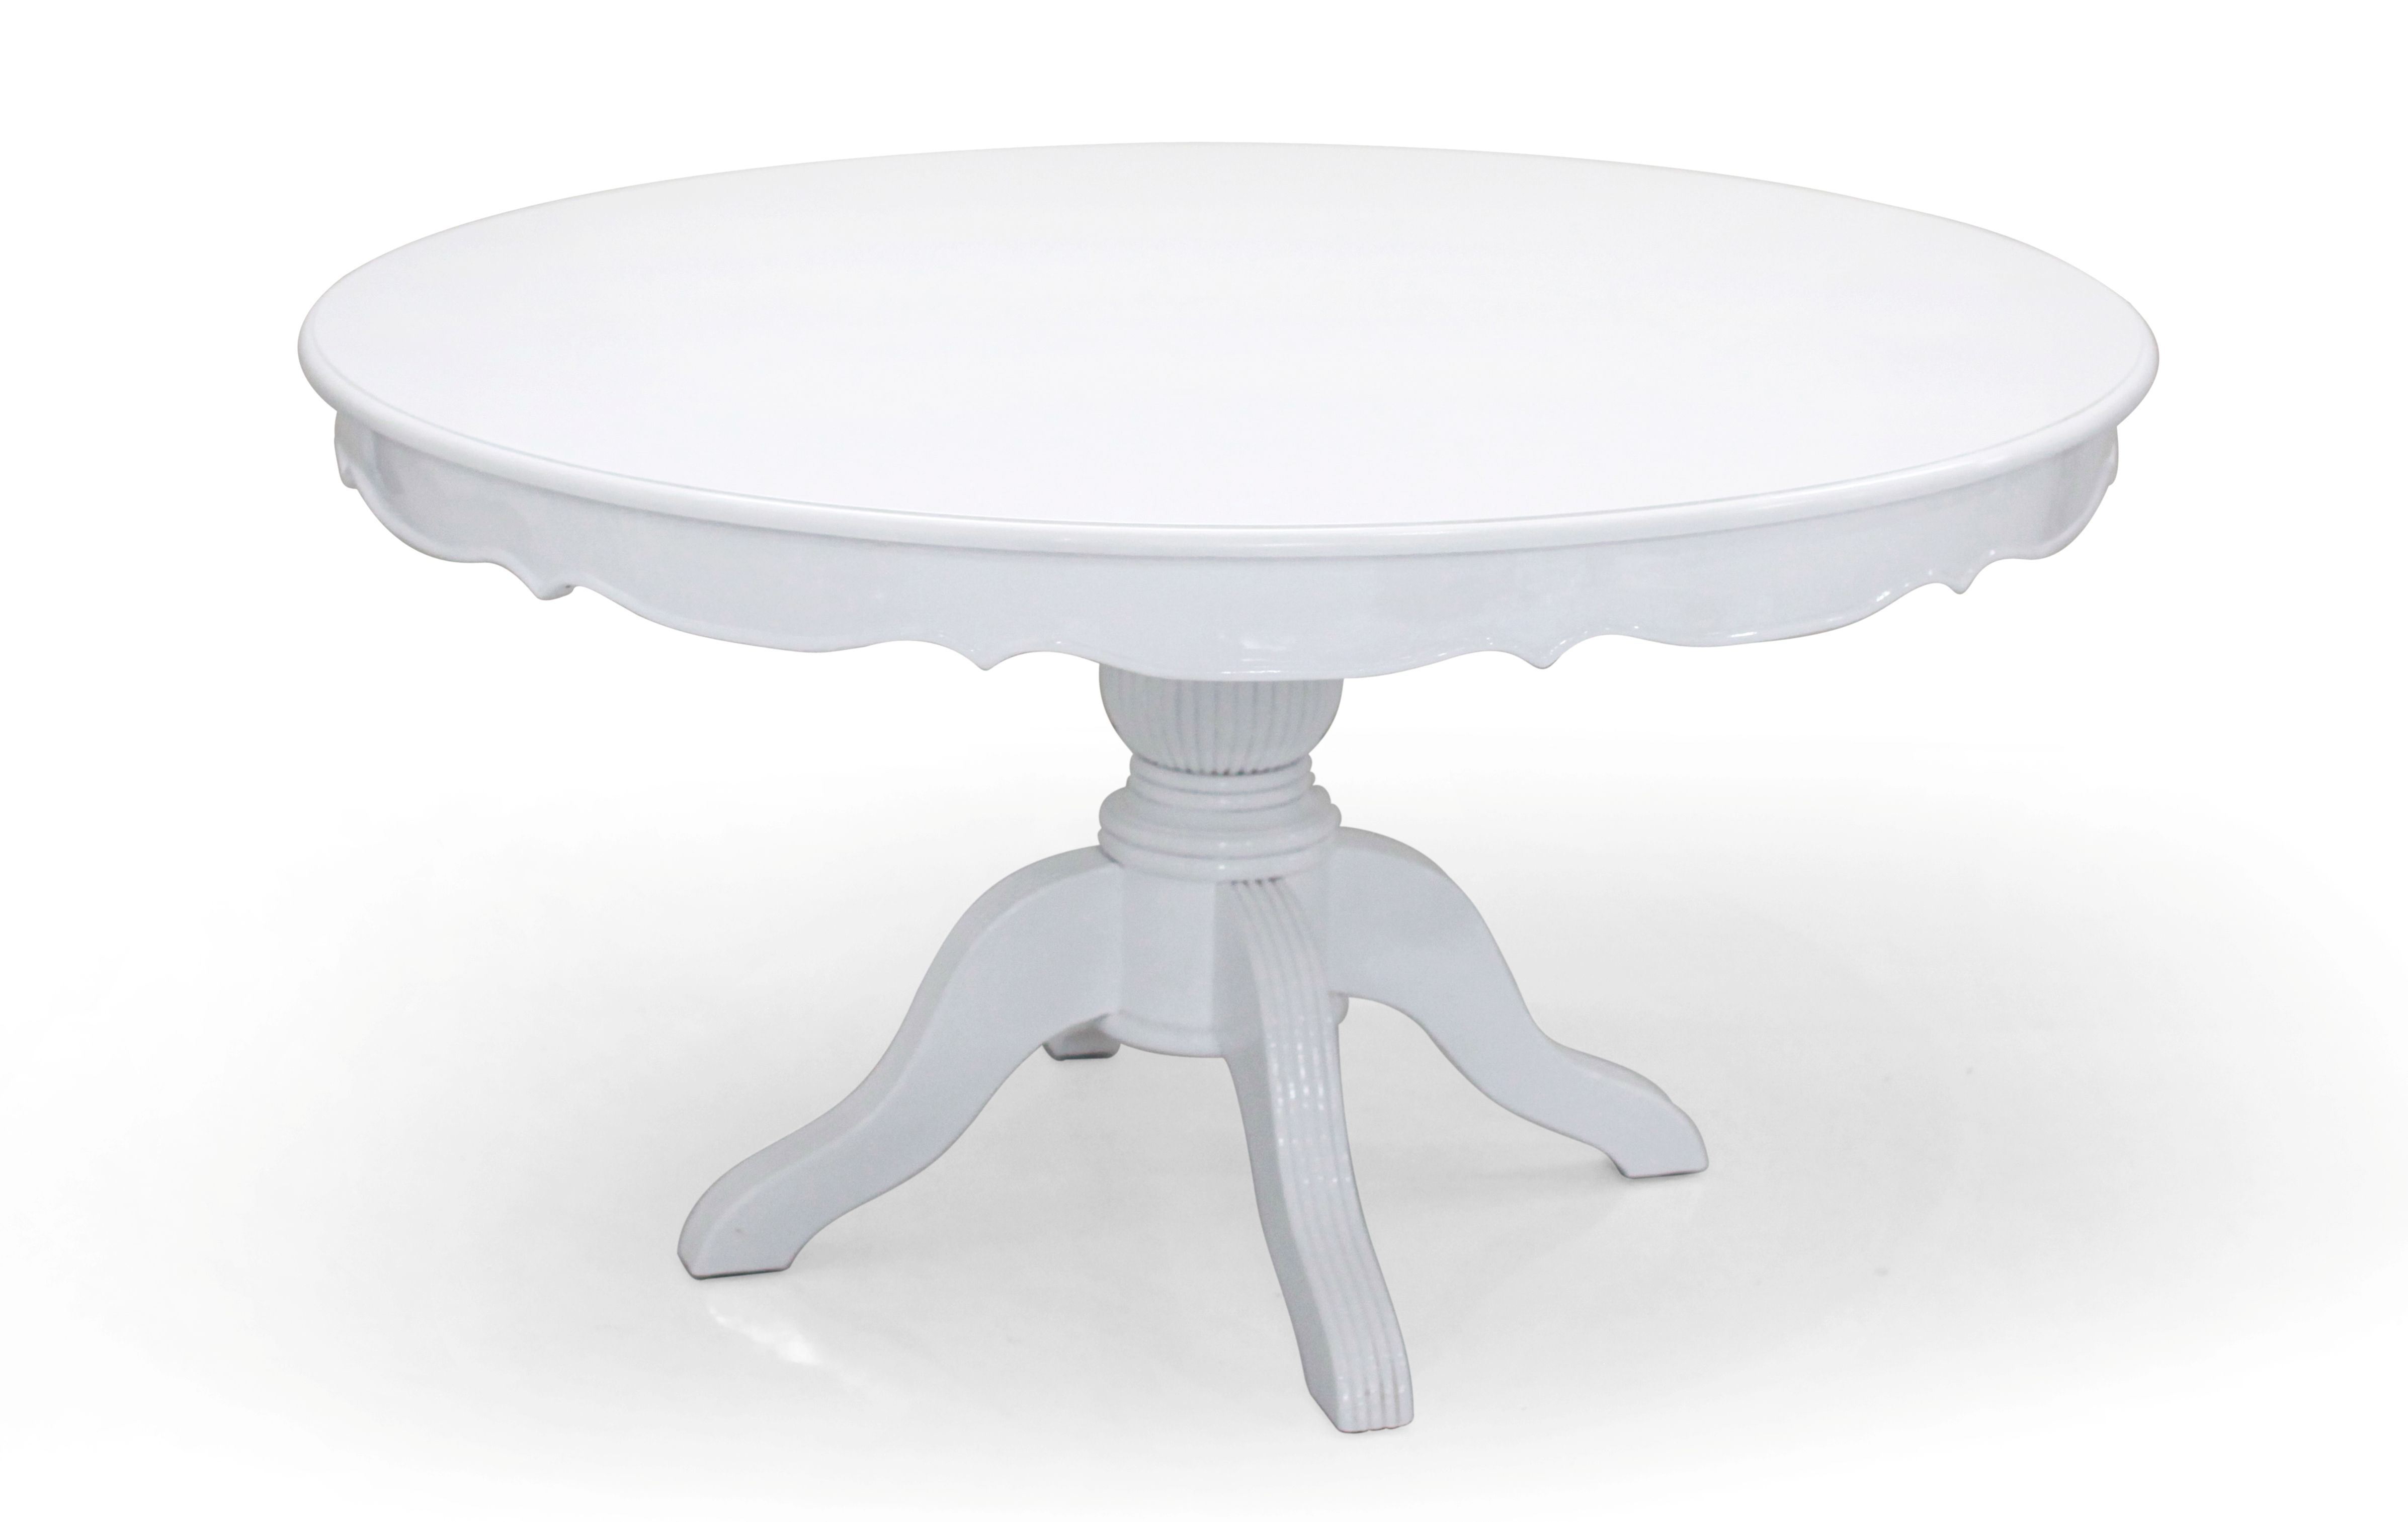 White Victorian Round Dining Table With A Solid Sturdy Carved